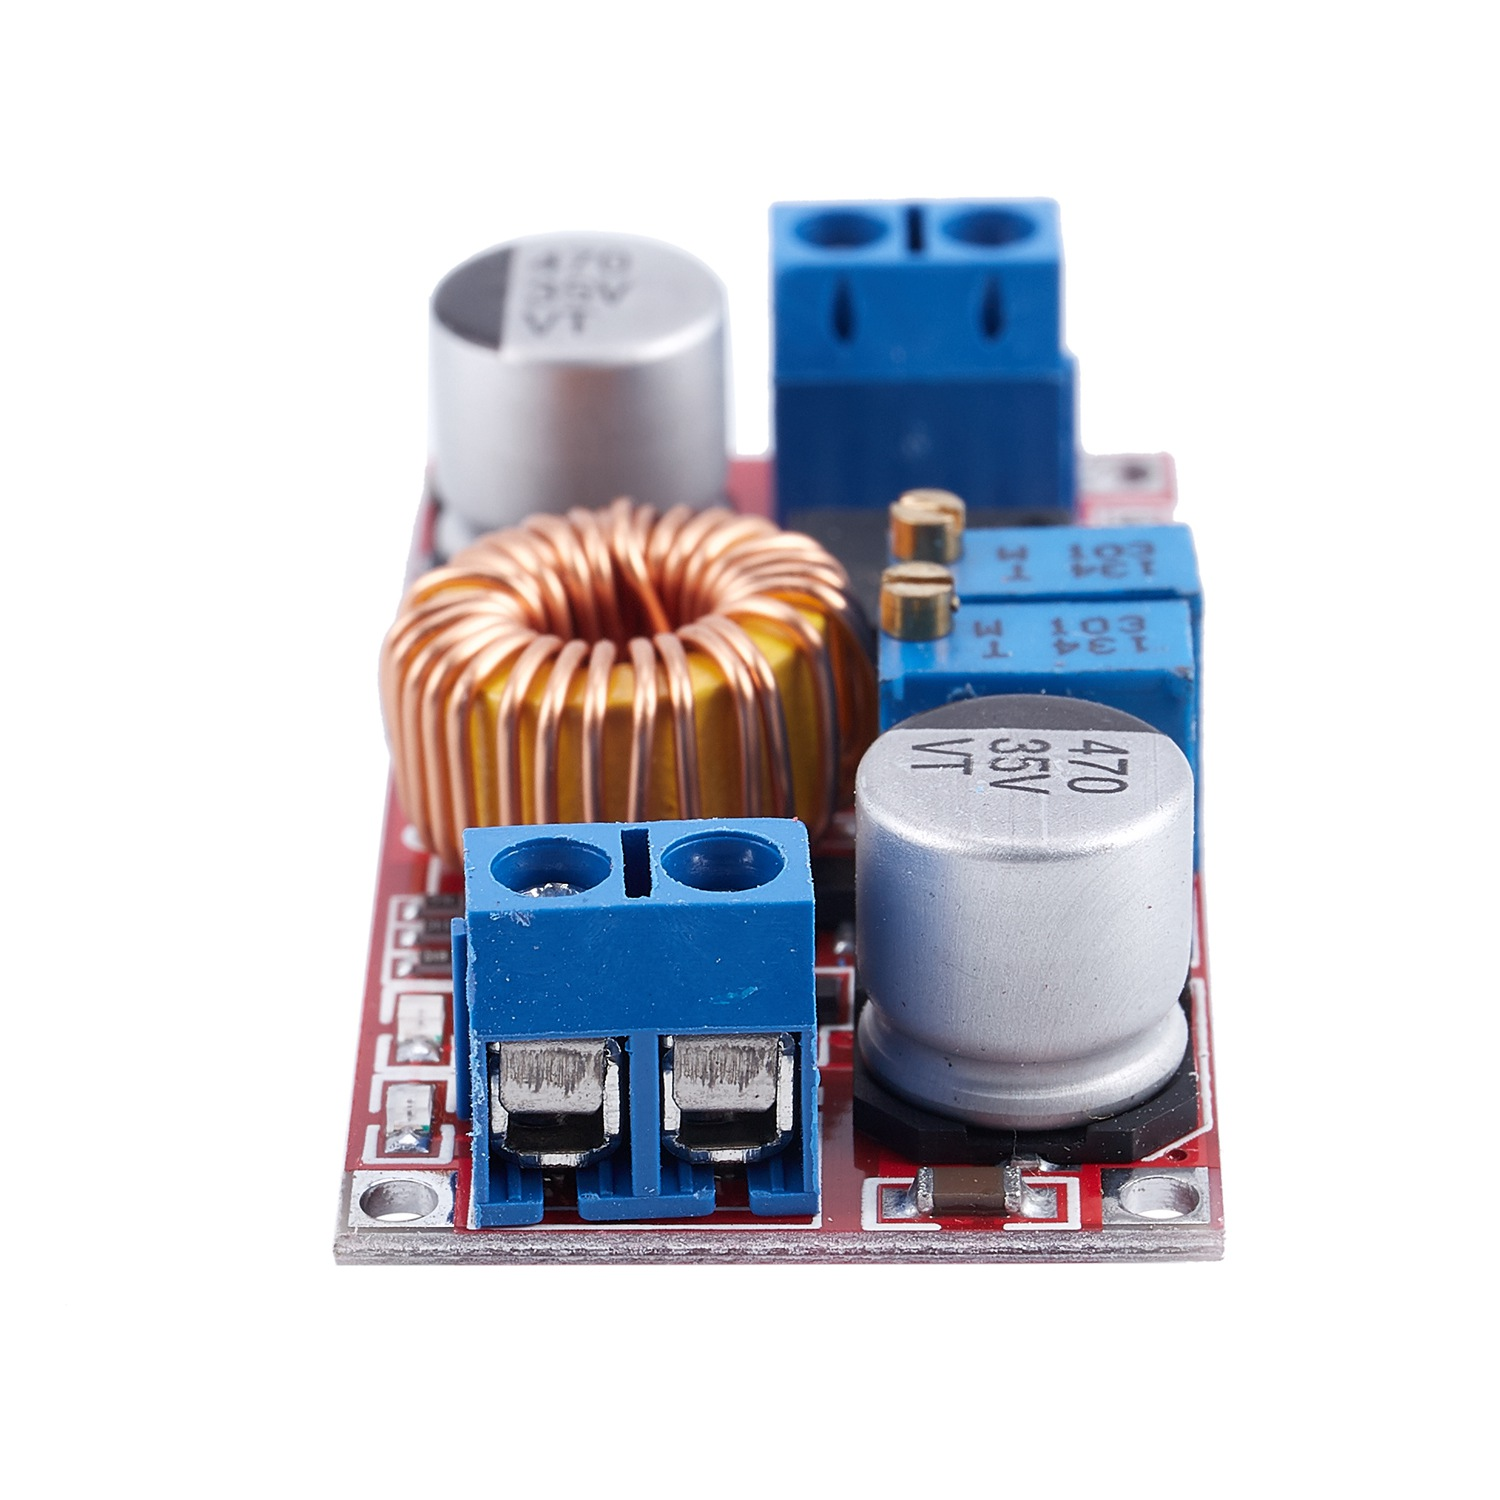 Lm2576 Constant Voltage Constant Current Switching Power Supply Dr